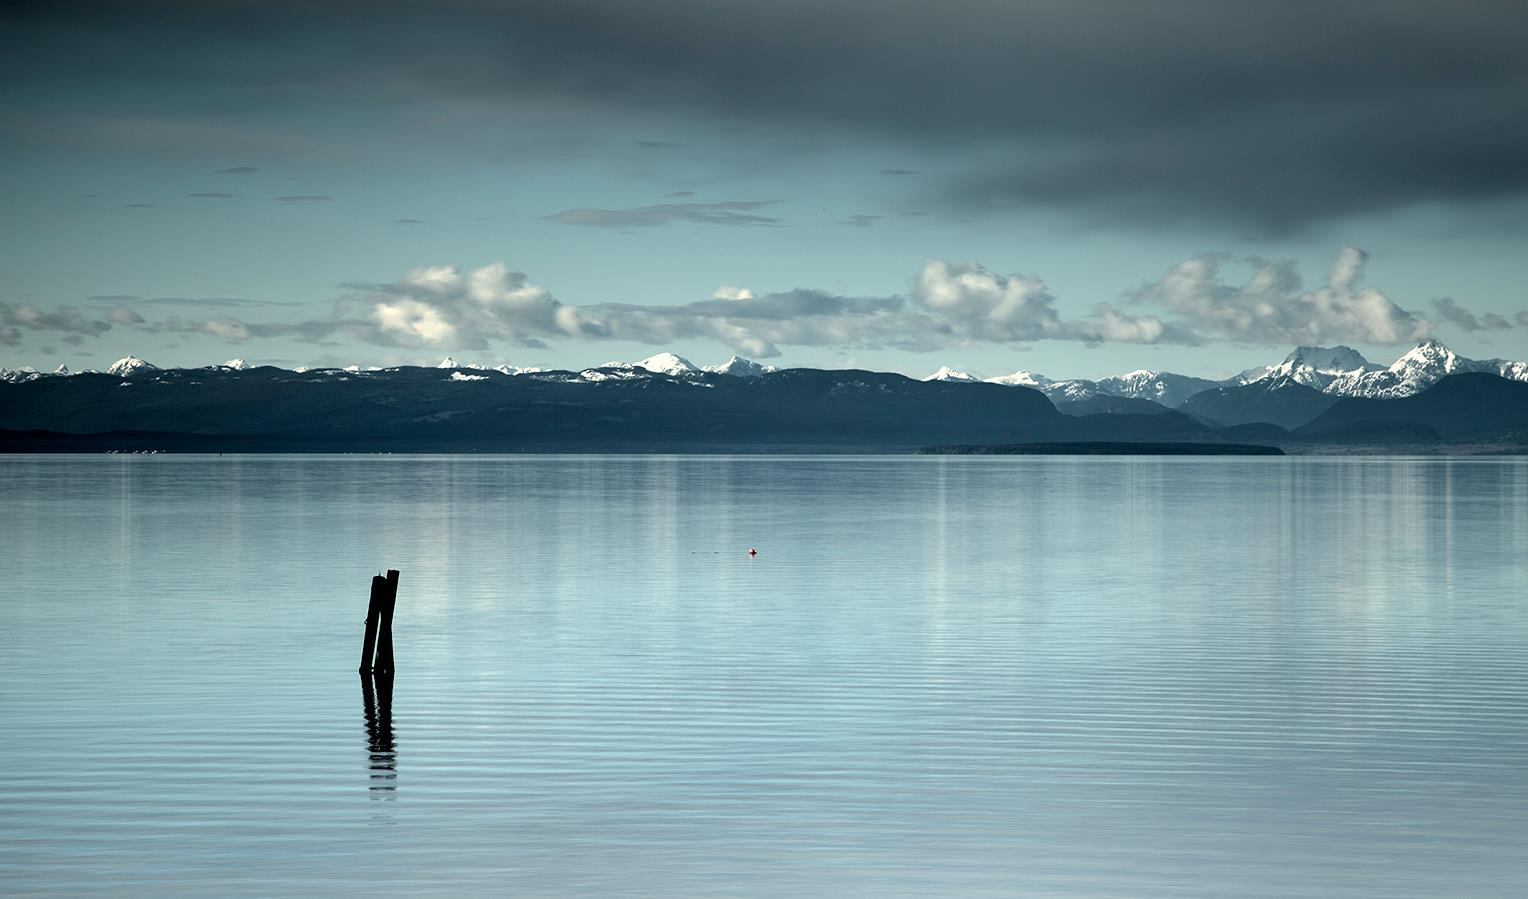 Parksville, Vancouver Island, BC, Canada